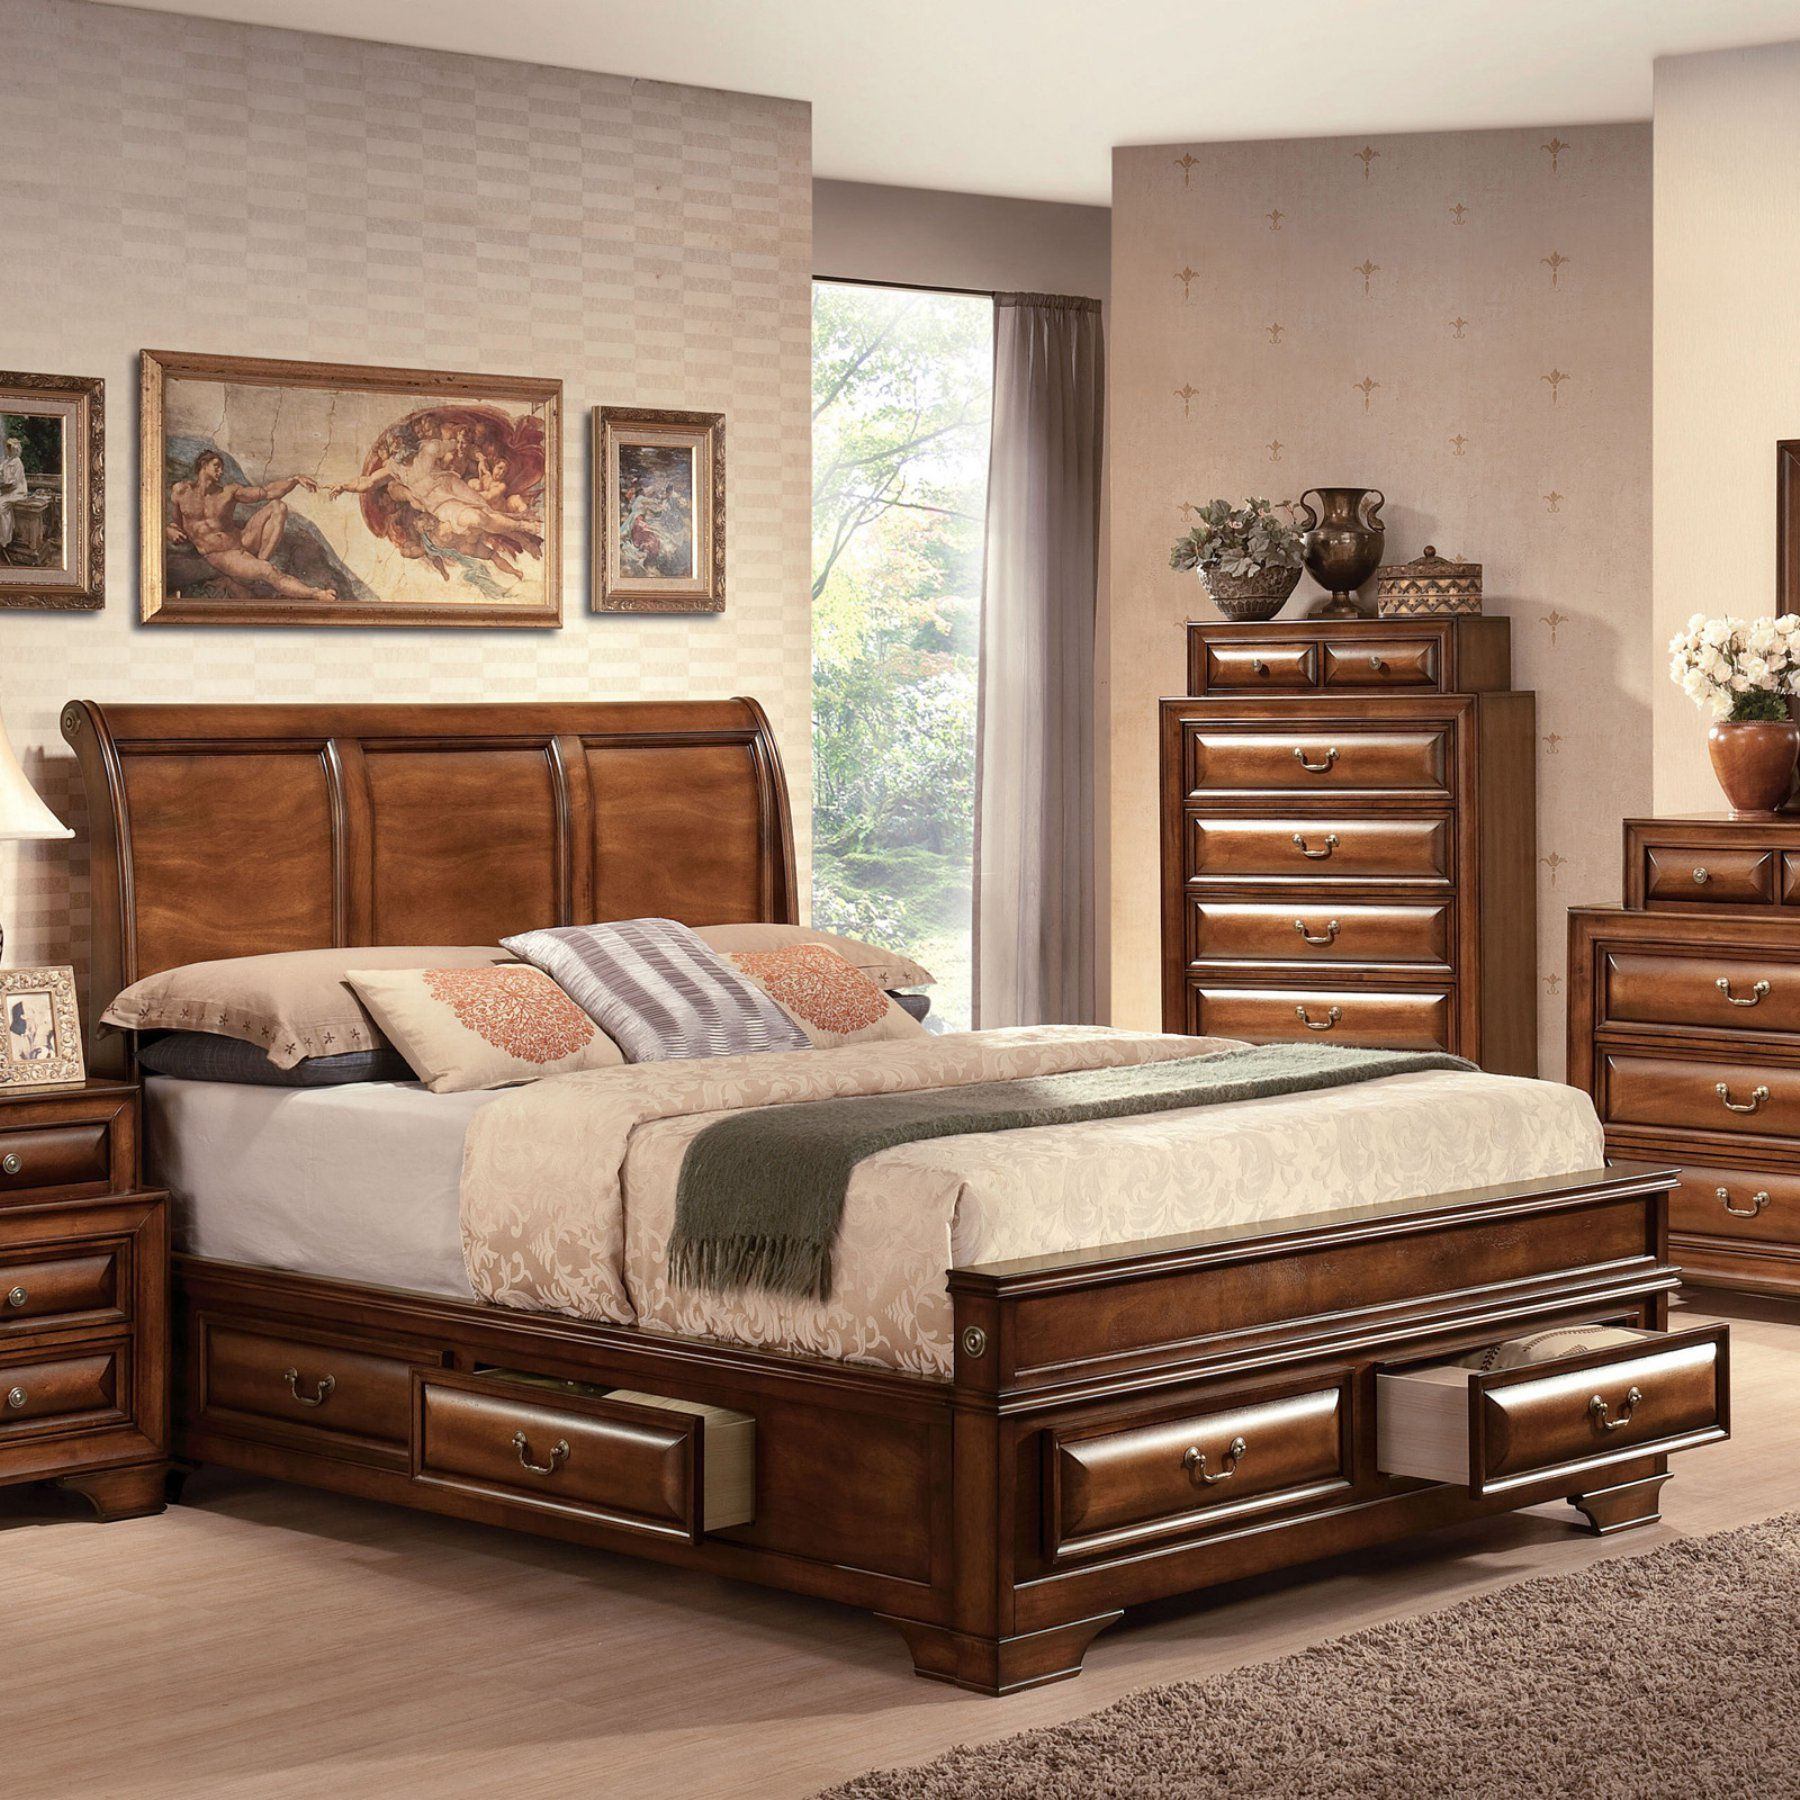 Affordable Contemporary Bedroom Furniture: Acme Furniture Konane Sleigh Bed - 20450Q